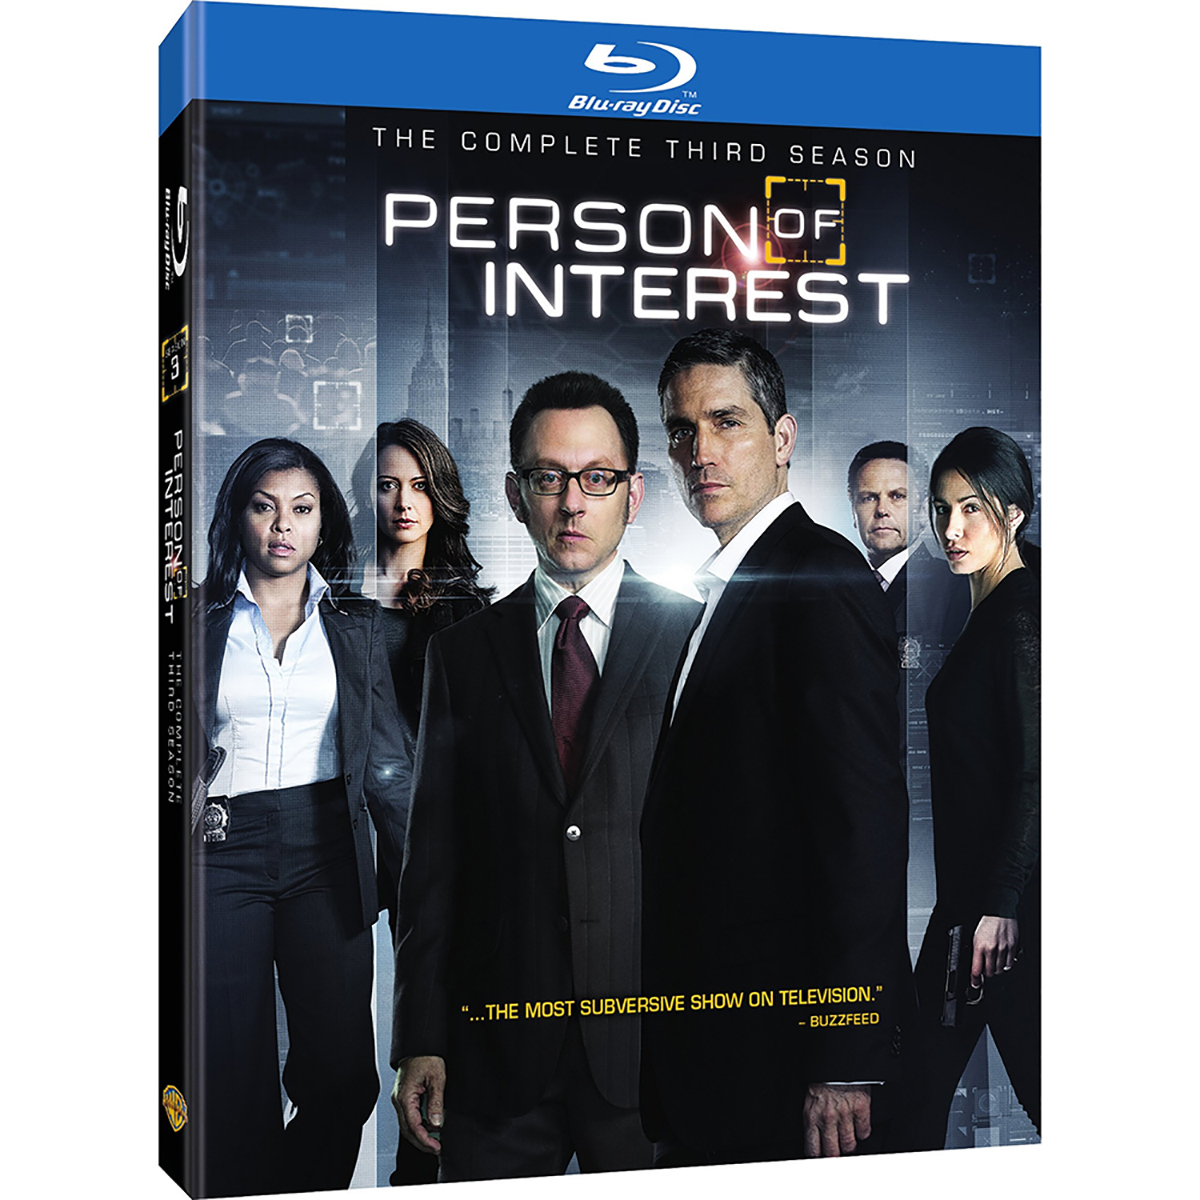 Person Of Interest: Season 3 Blu-ray -  DVDs & Videos 6445-773078